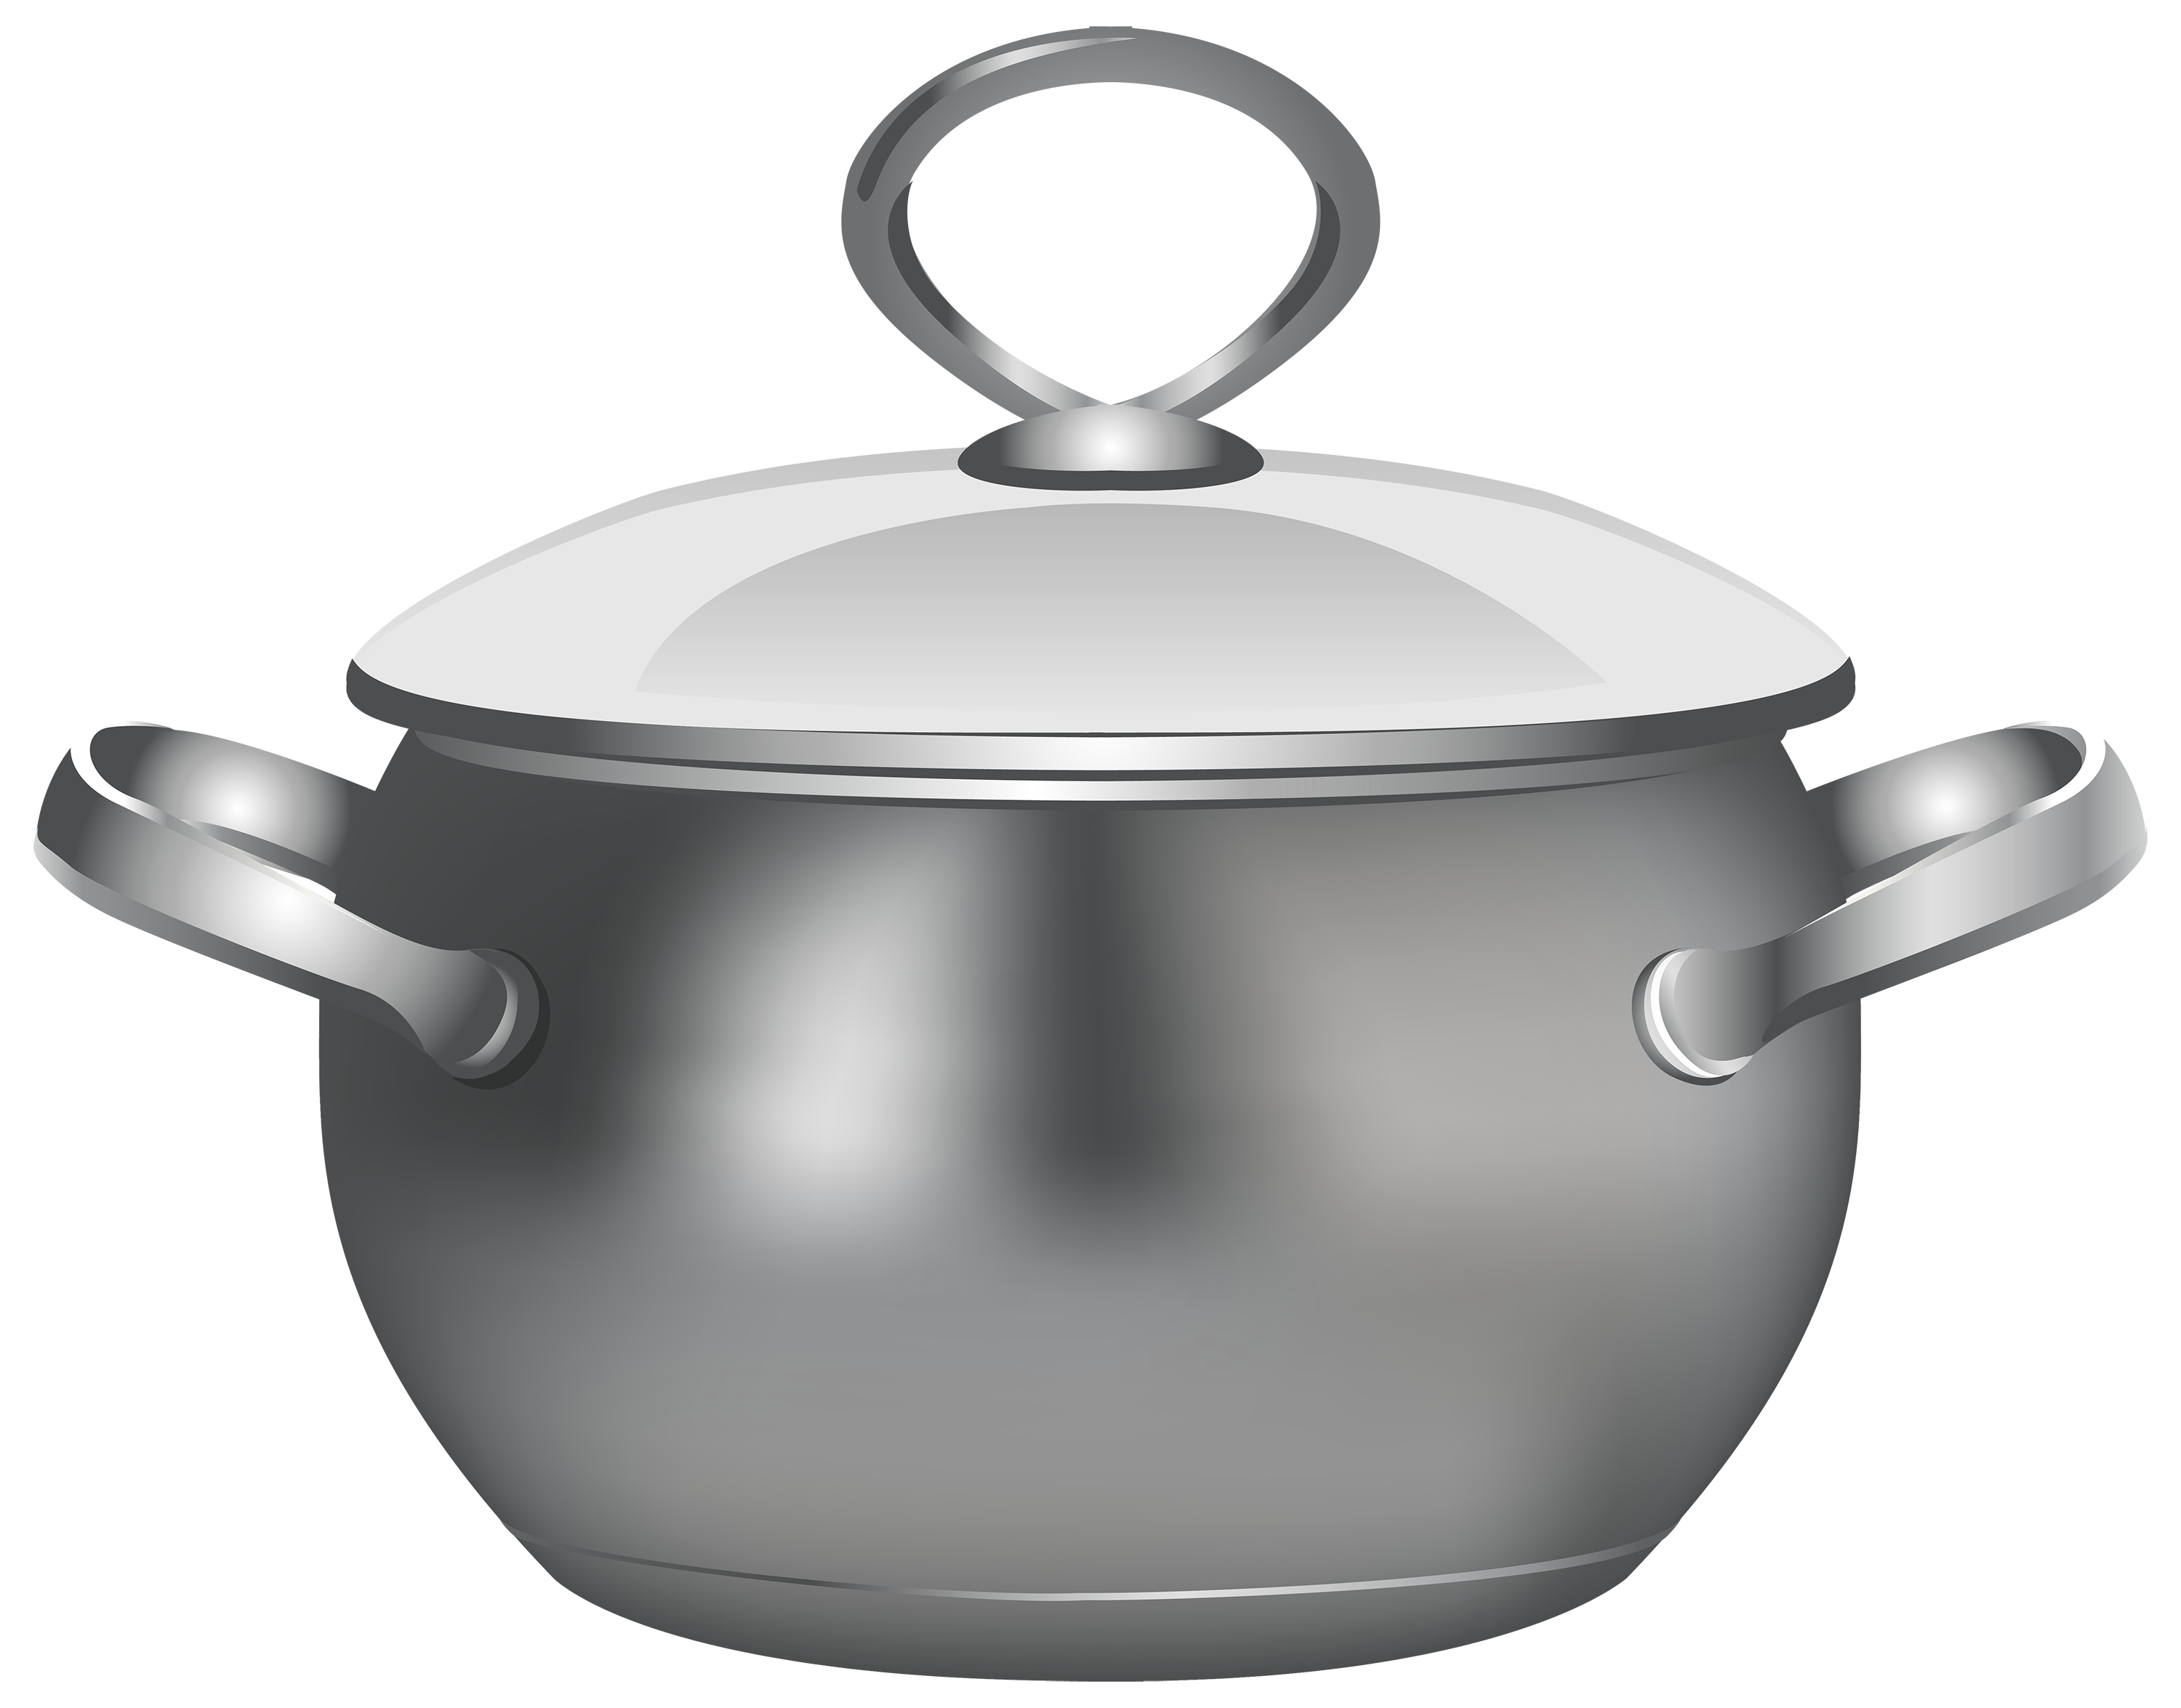 28+ Collection of Pot Clipart Images | High quality, free cliparts ... image freeuse